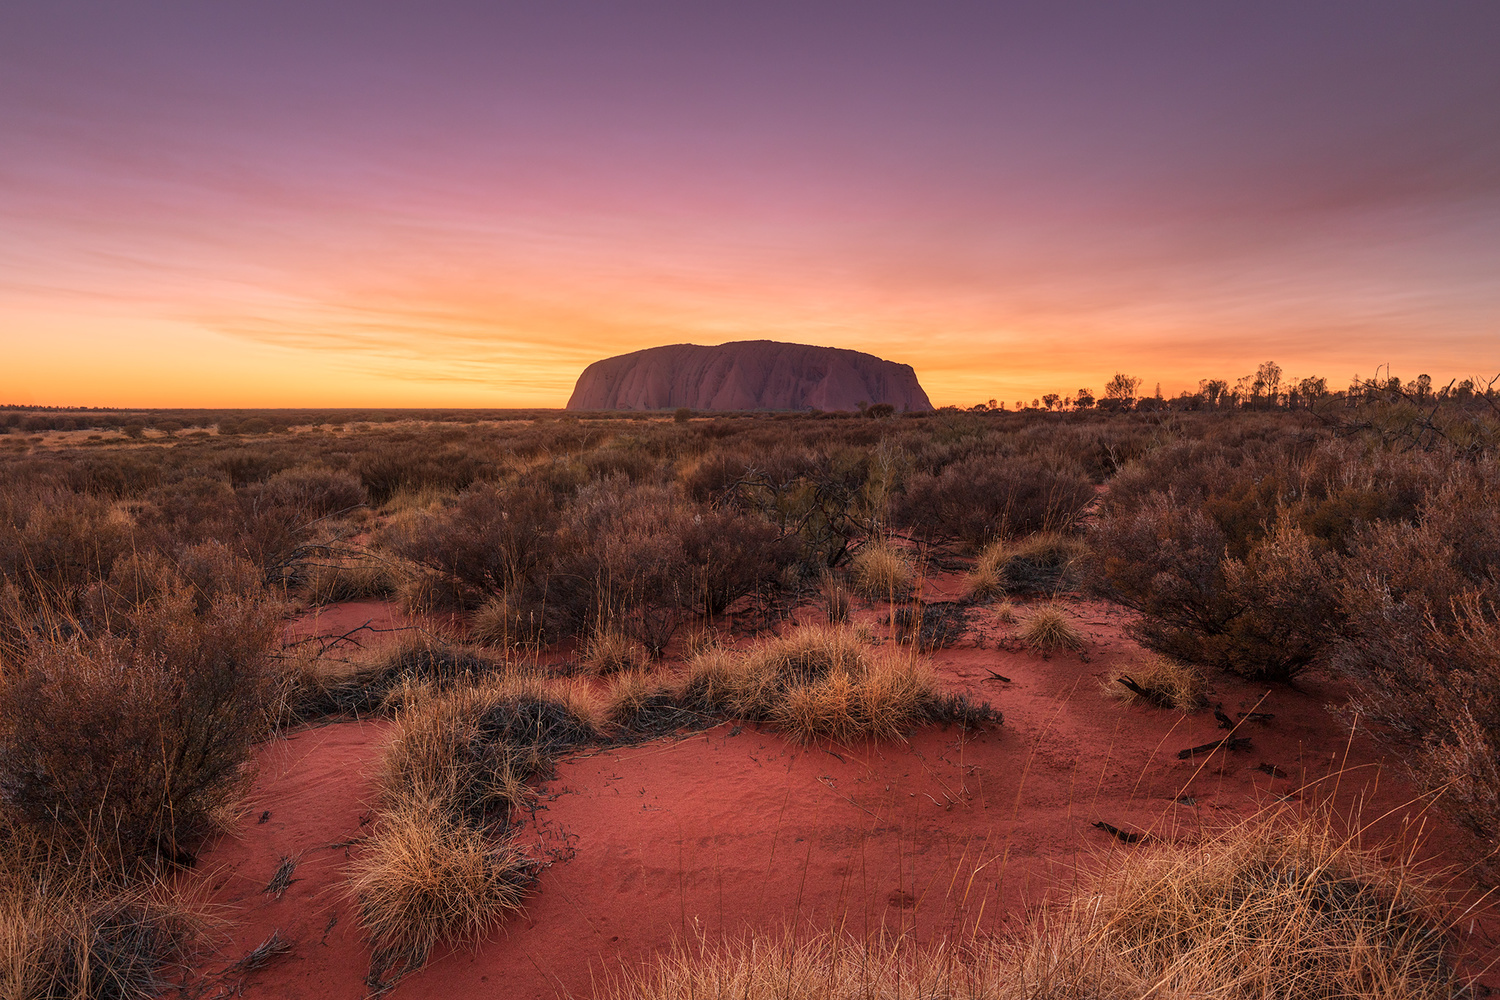 The Red Centre of Australia by Anton Galitch